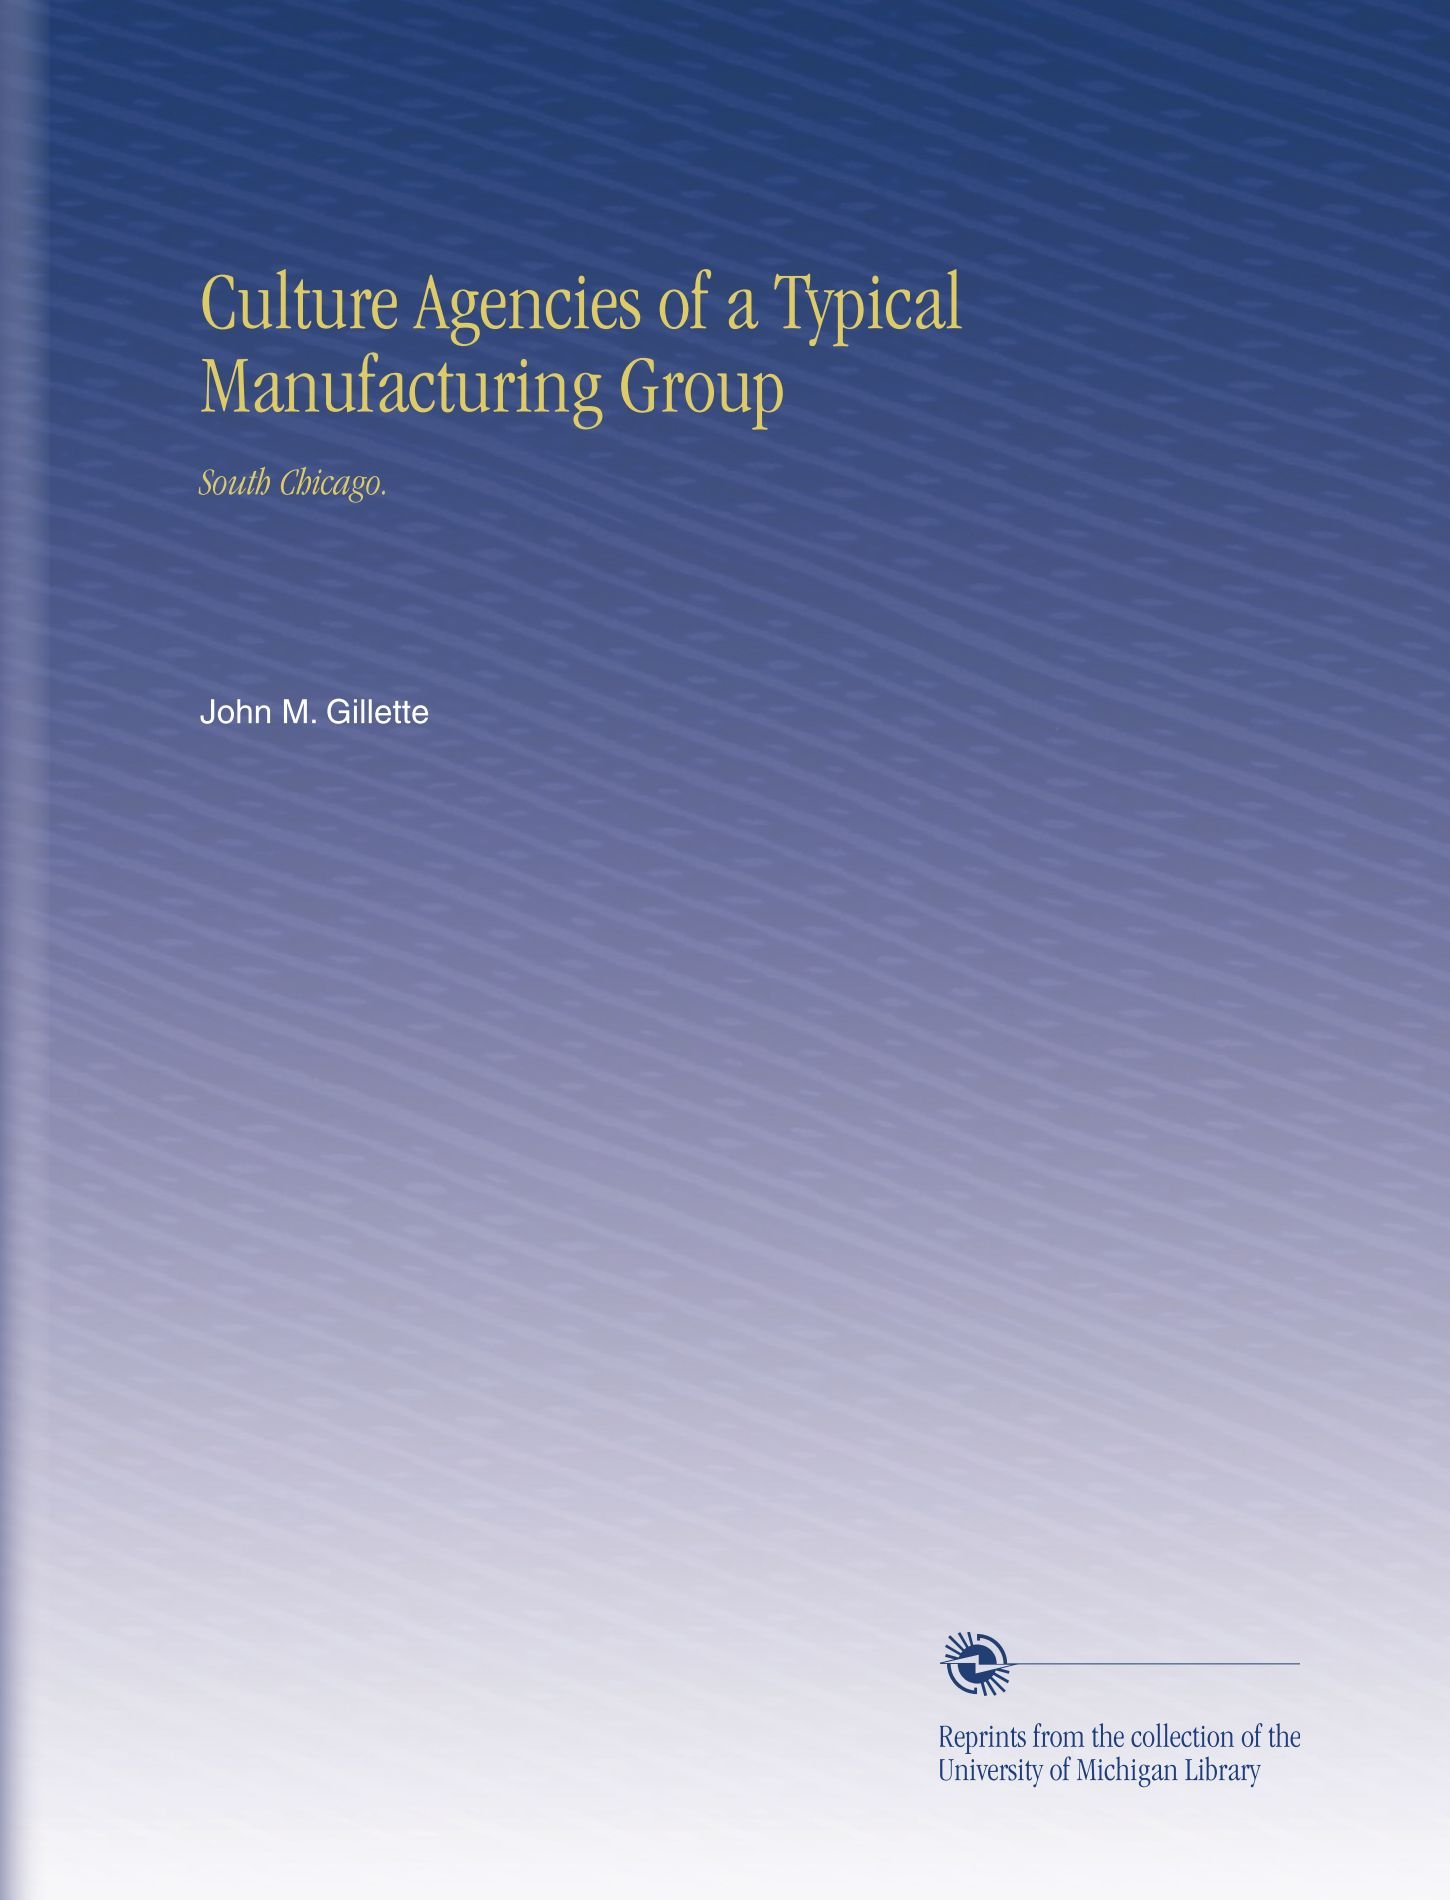 Download Culture Agencies of a Typical Manufacturing Group: South Chicago. PDF